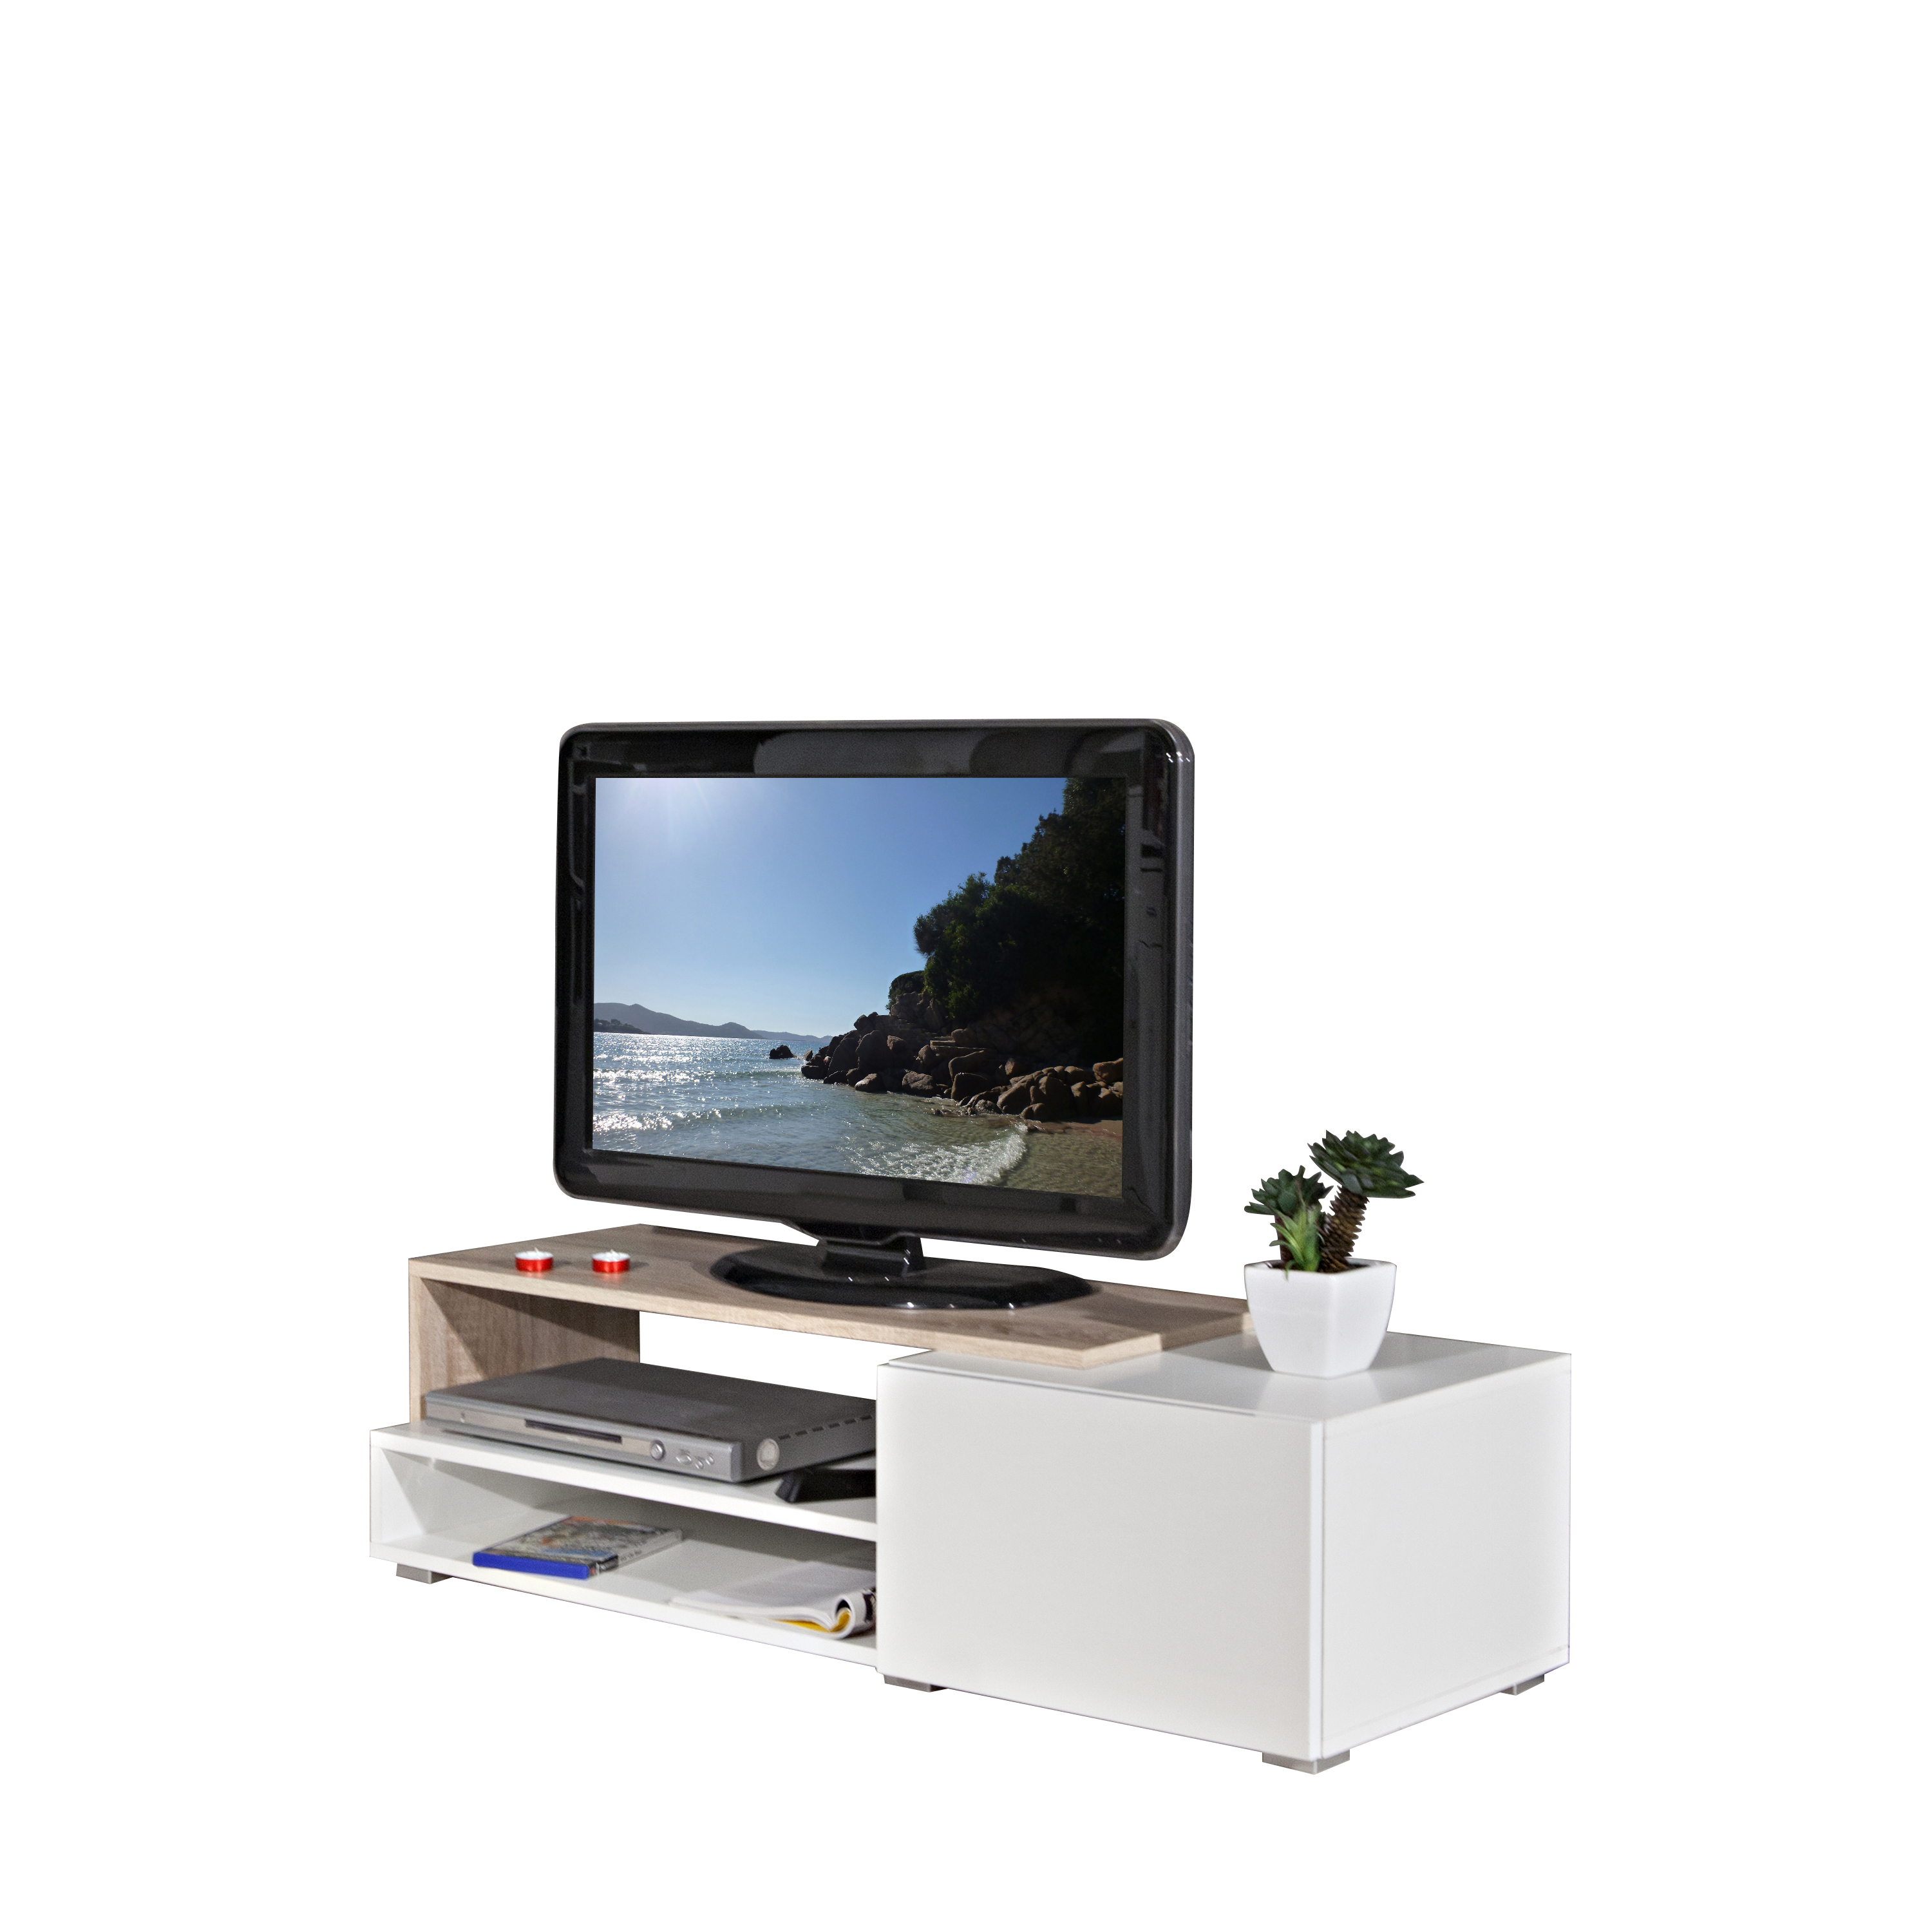 135 meuble tv hauteur 120 cm meuble tv design nora ii blanc laque 170 cm meuble tv 120 cm en. Black Bedroom Furniture Sets. Home Design Ideas